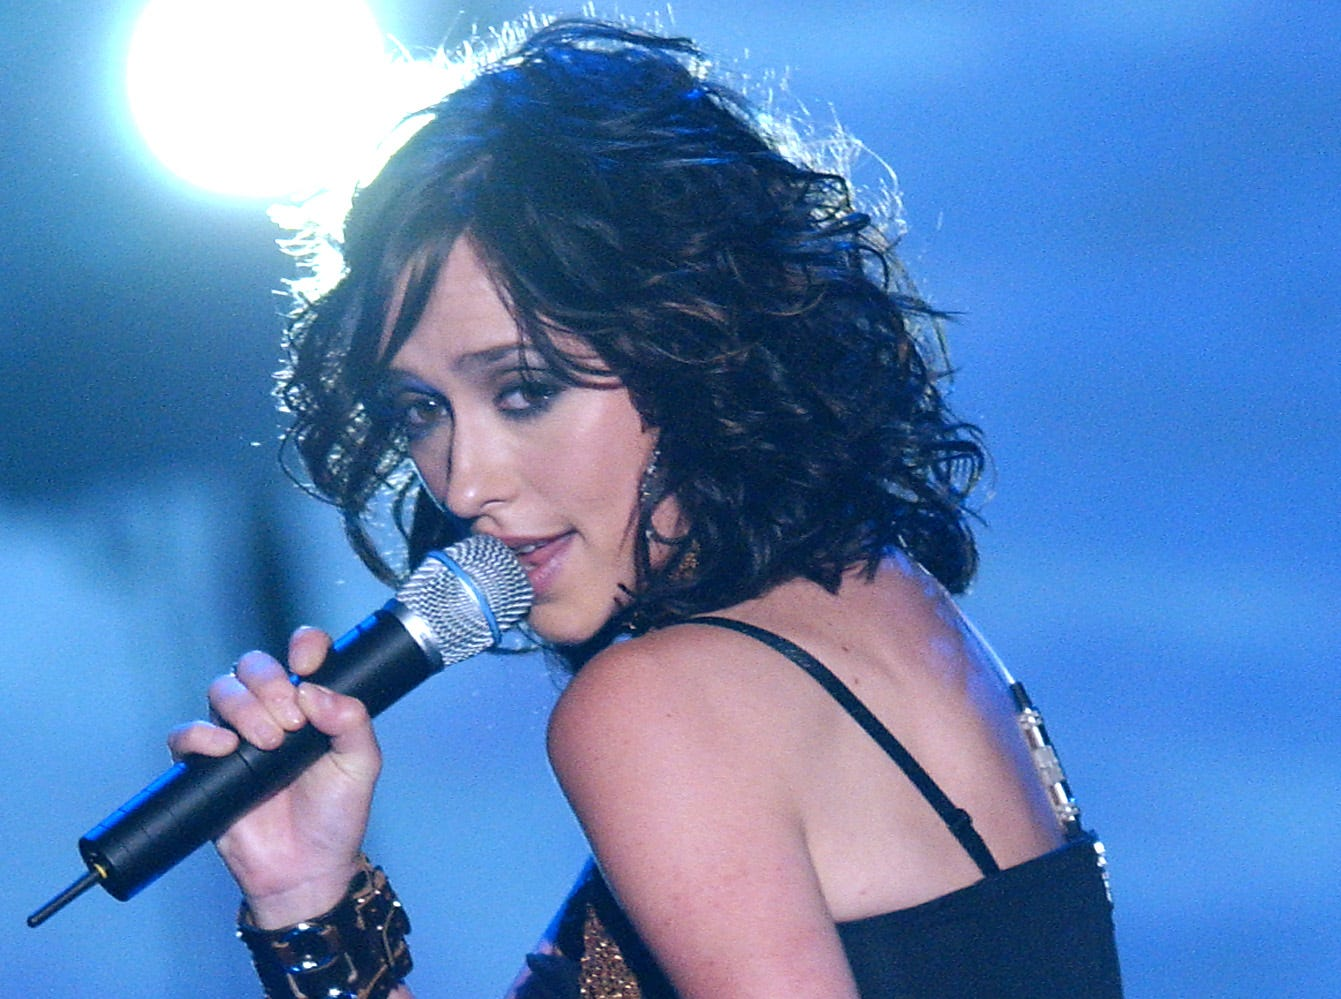 Jennifer Love Hewitt performs during the Teen Choice Awards 2002, in Los Angeles, Sunday, Aug. 4, 2002. (AP Photo/Lucy Nicholson)